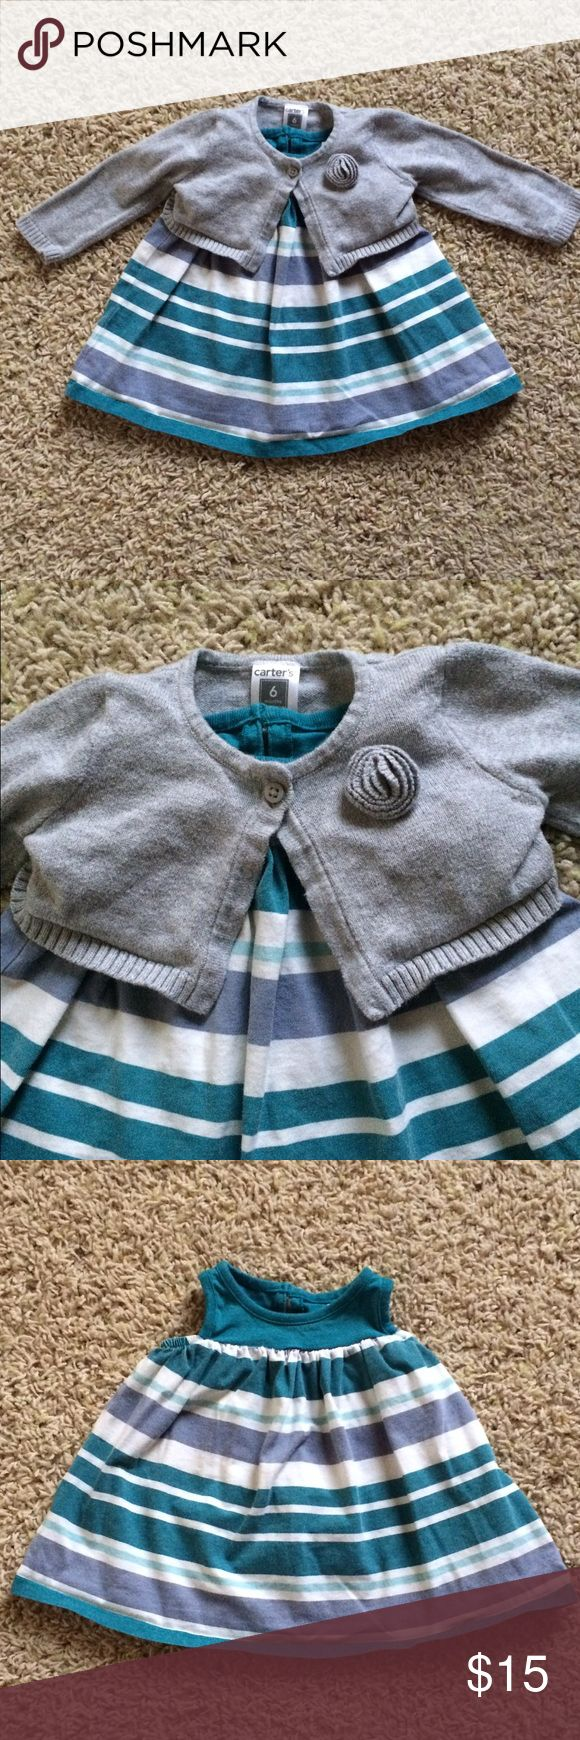 Sweater and Dress Set 3-6 Month Tea Collection blue and teal striped dress and 6 Month Carter's grey sweater. Great used condition, normal wear and wash. Tea Collection Dresses